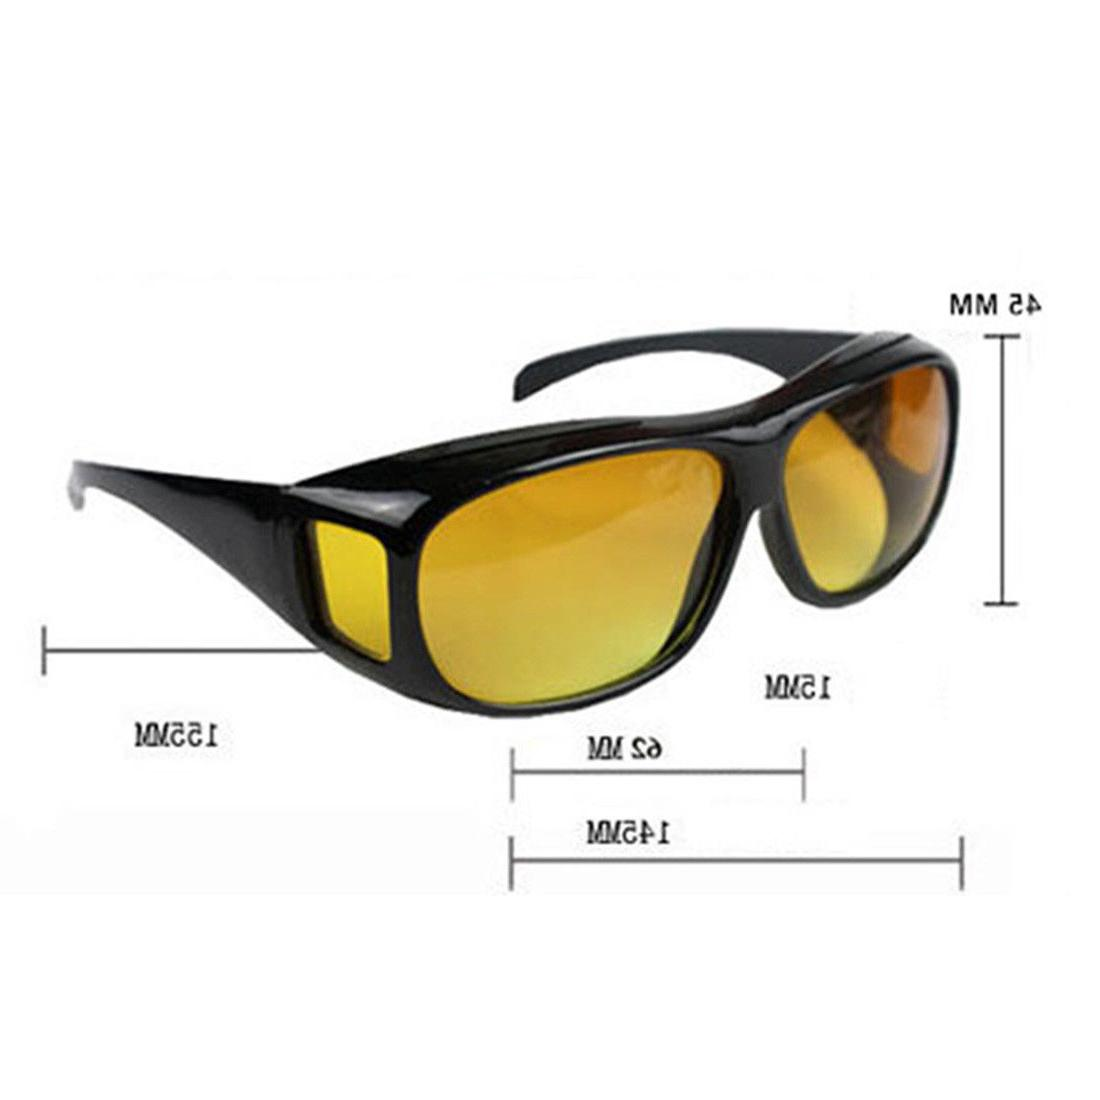 2 Pair HD Night Sunglasses Fits As